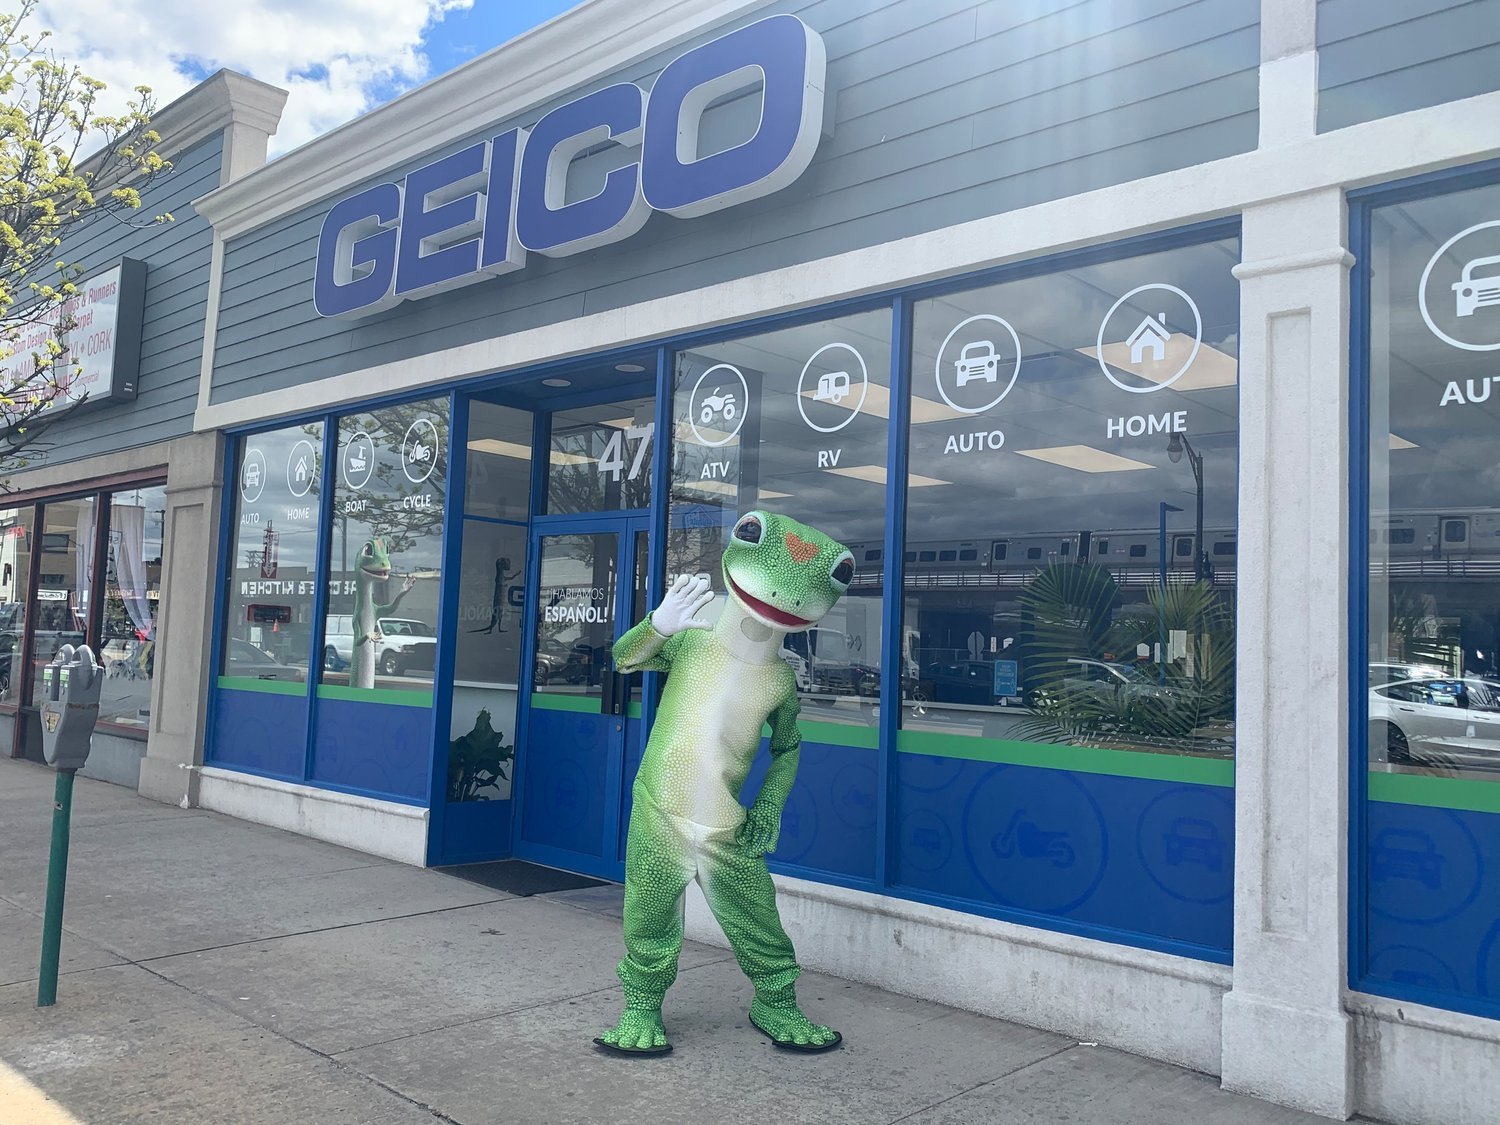 The Geico field office in Lynbrook opened on March 10 and offers a variety of services. The Geico gecko hangs outside the business one Saturday per month.